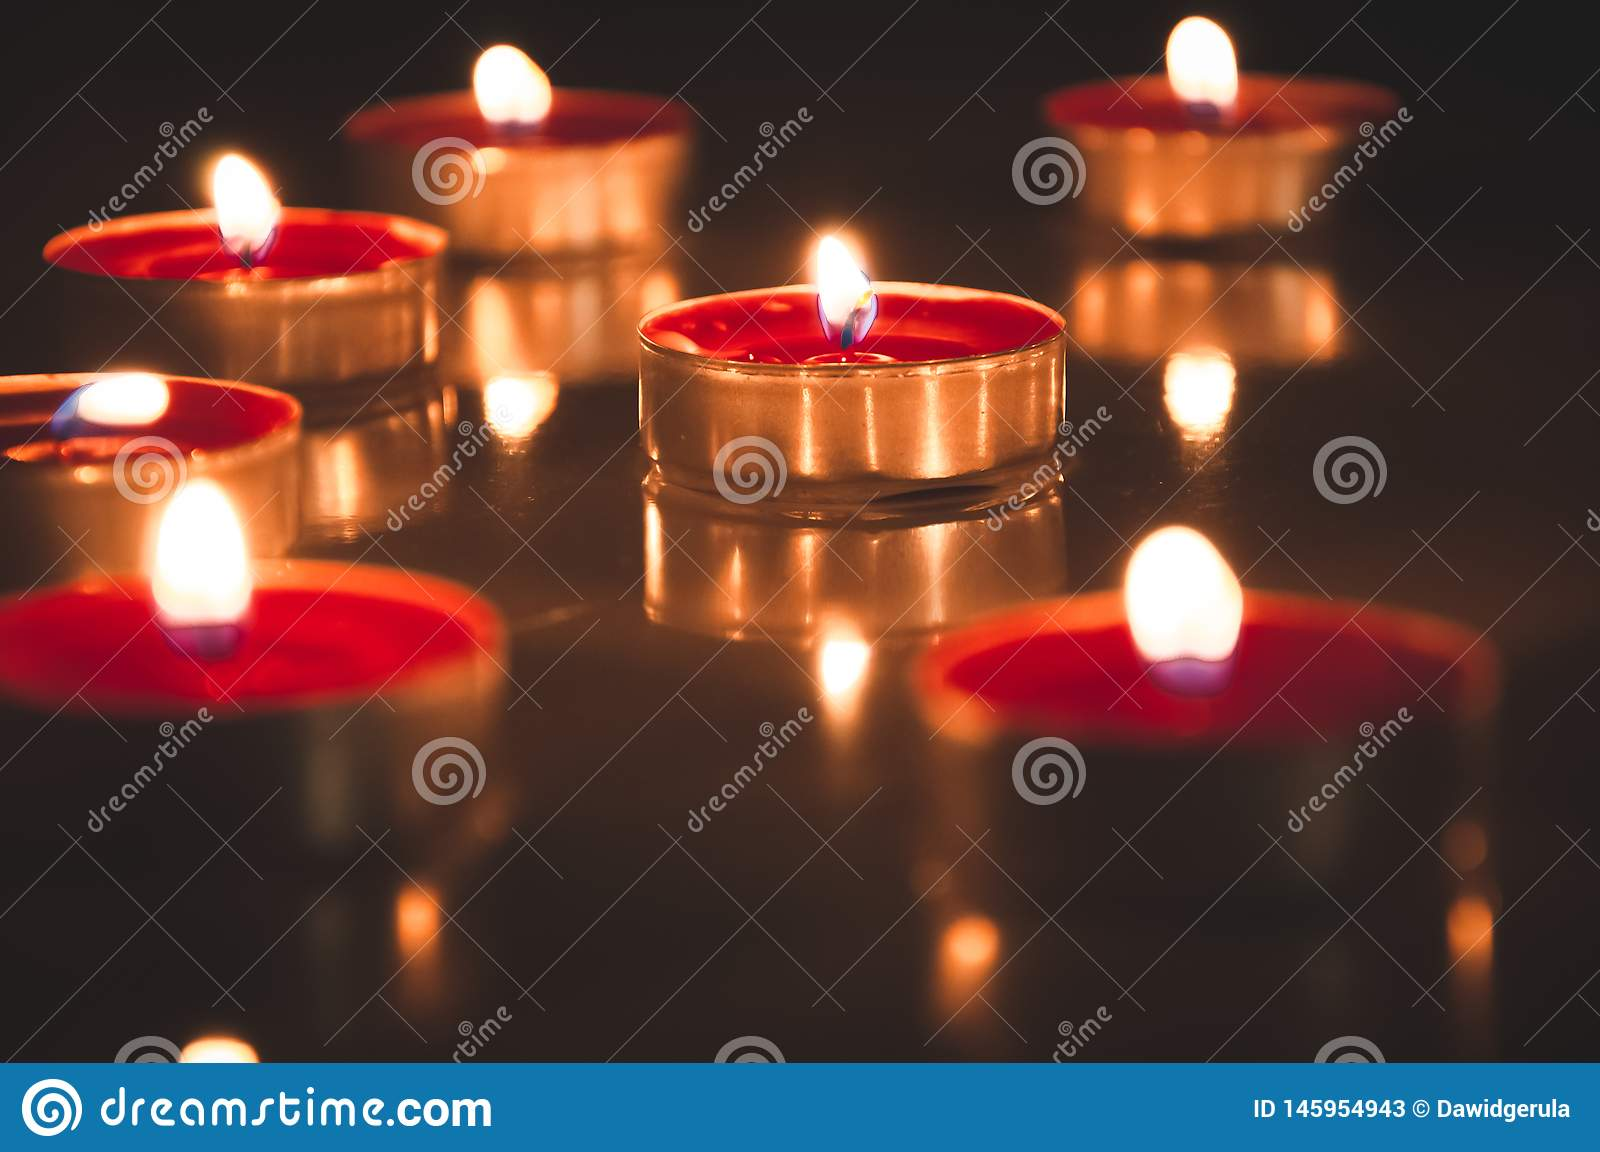 Red candles glowing in the night